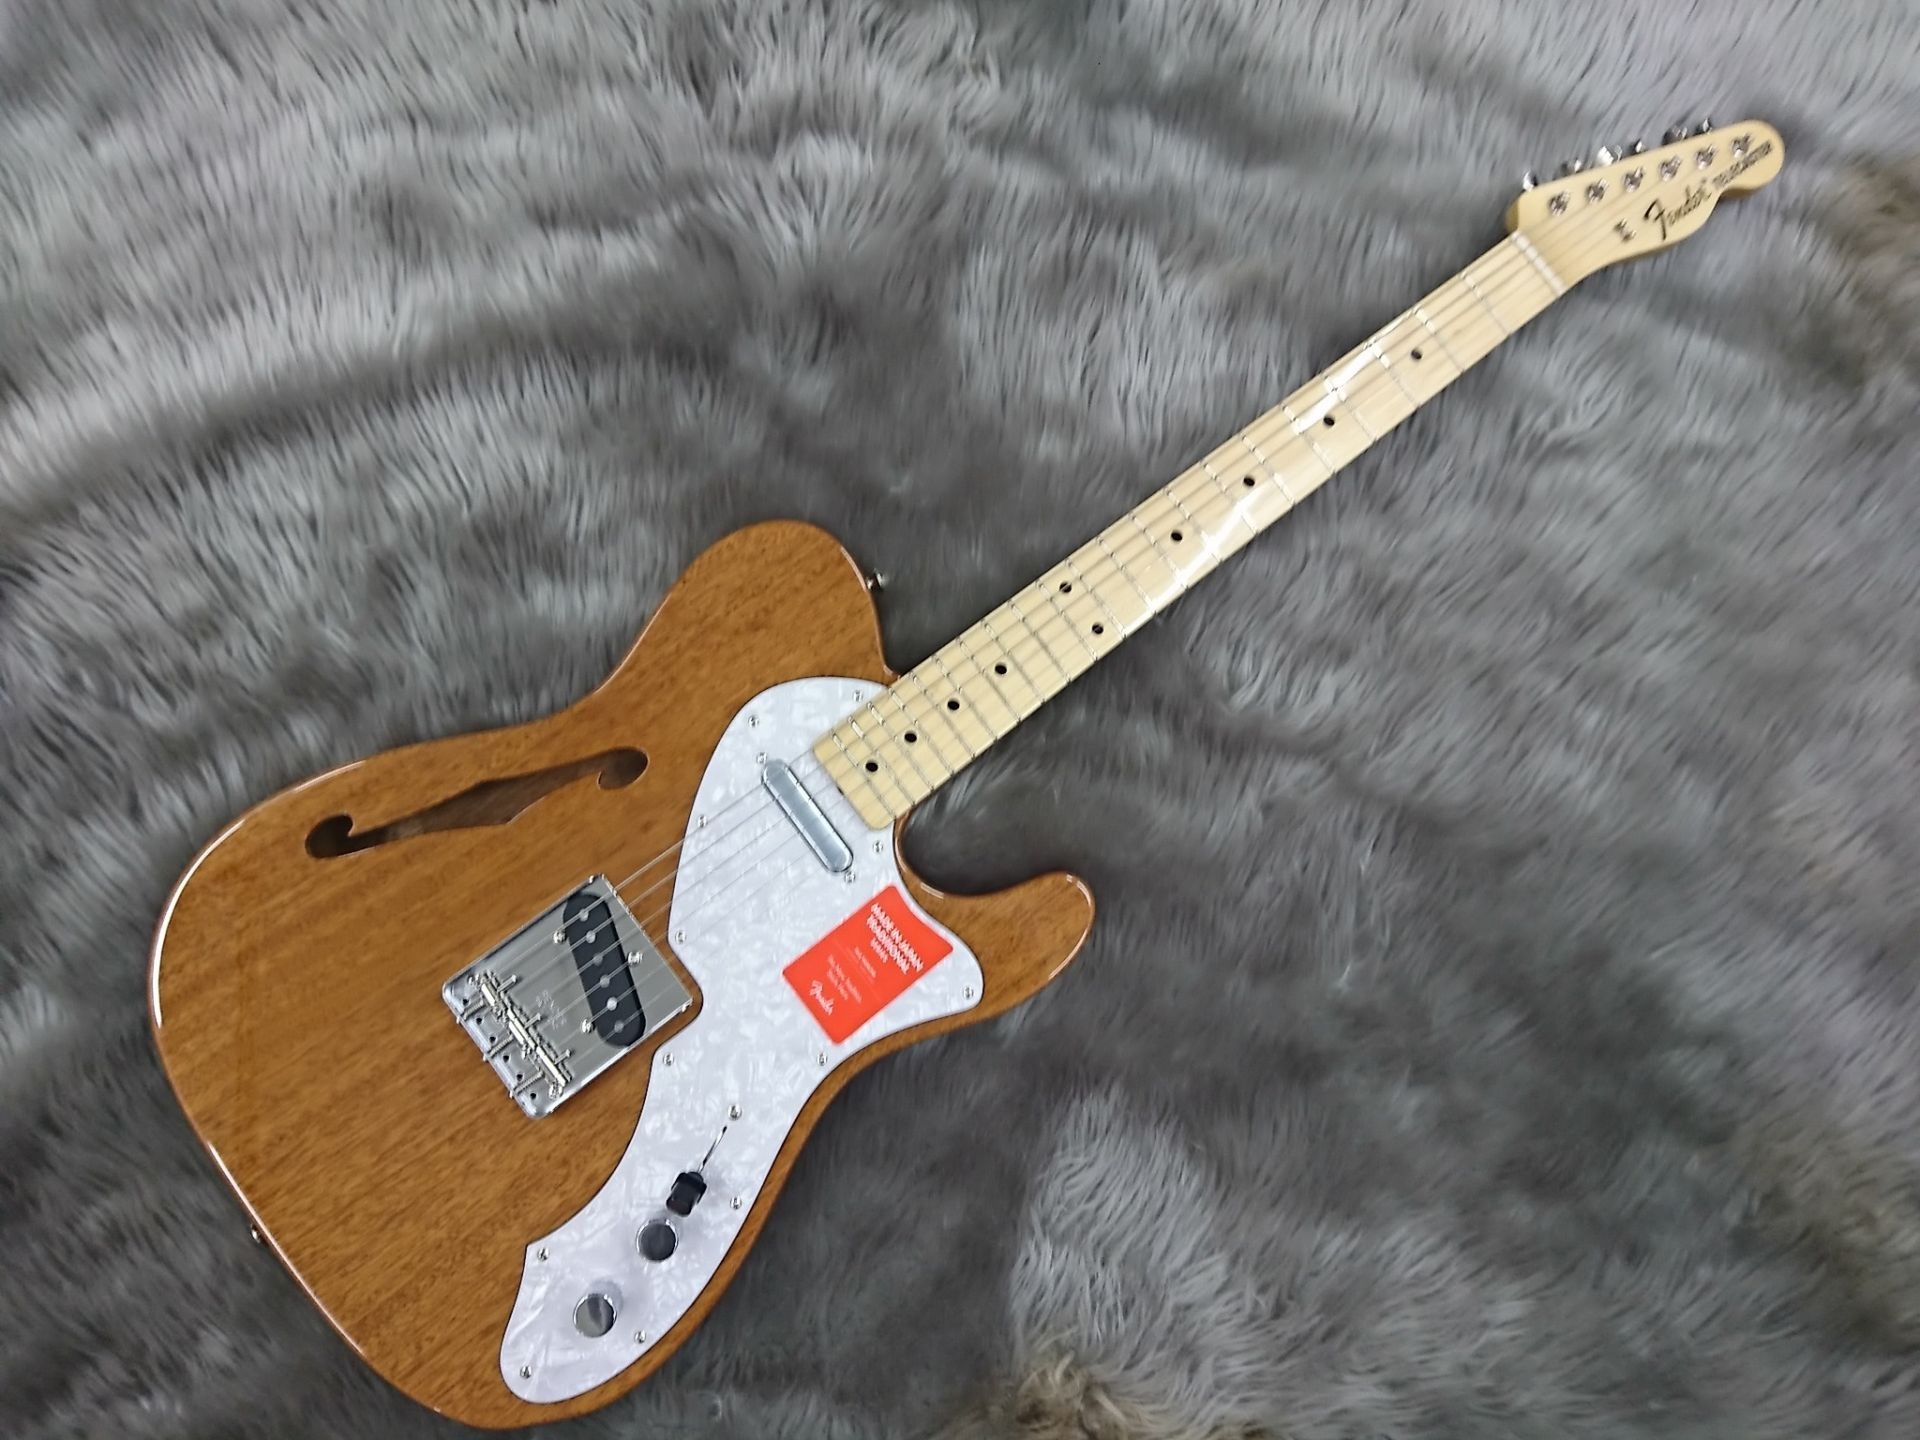 MADE IN JAPAN TRADITIONAL 69 TELECASTER THINLINE